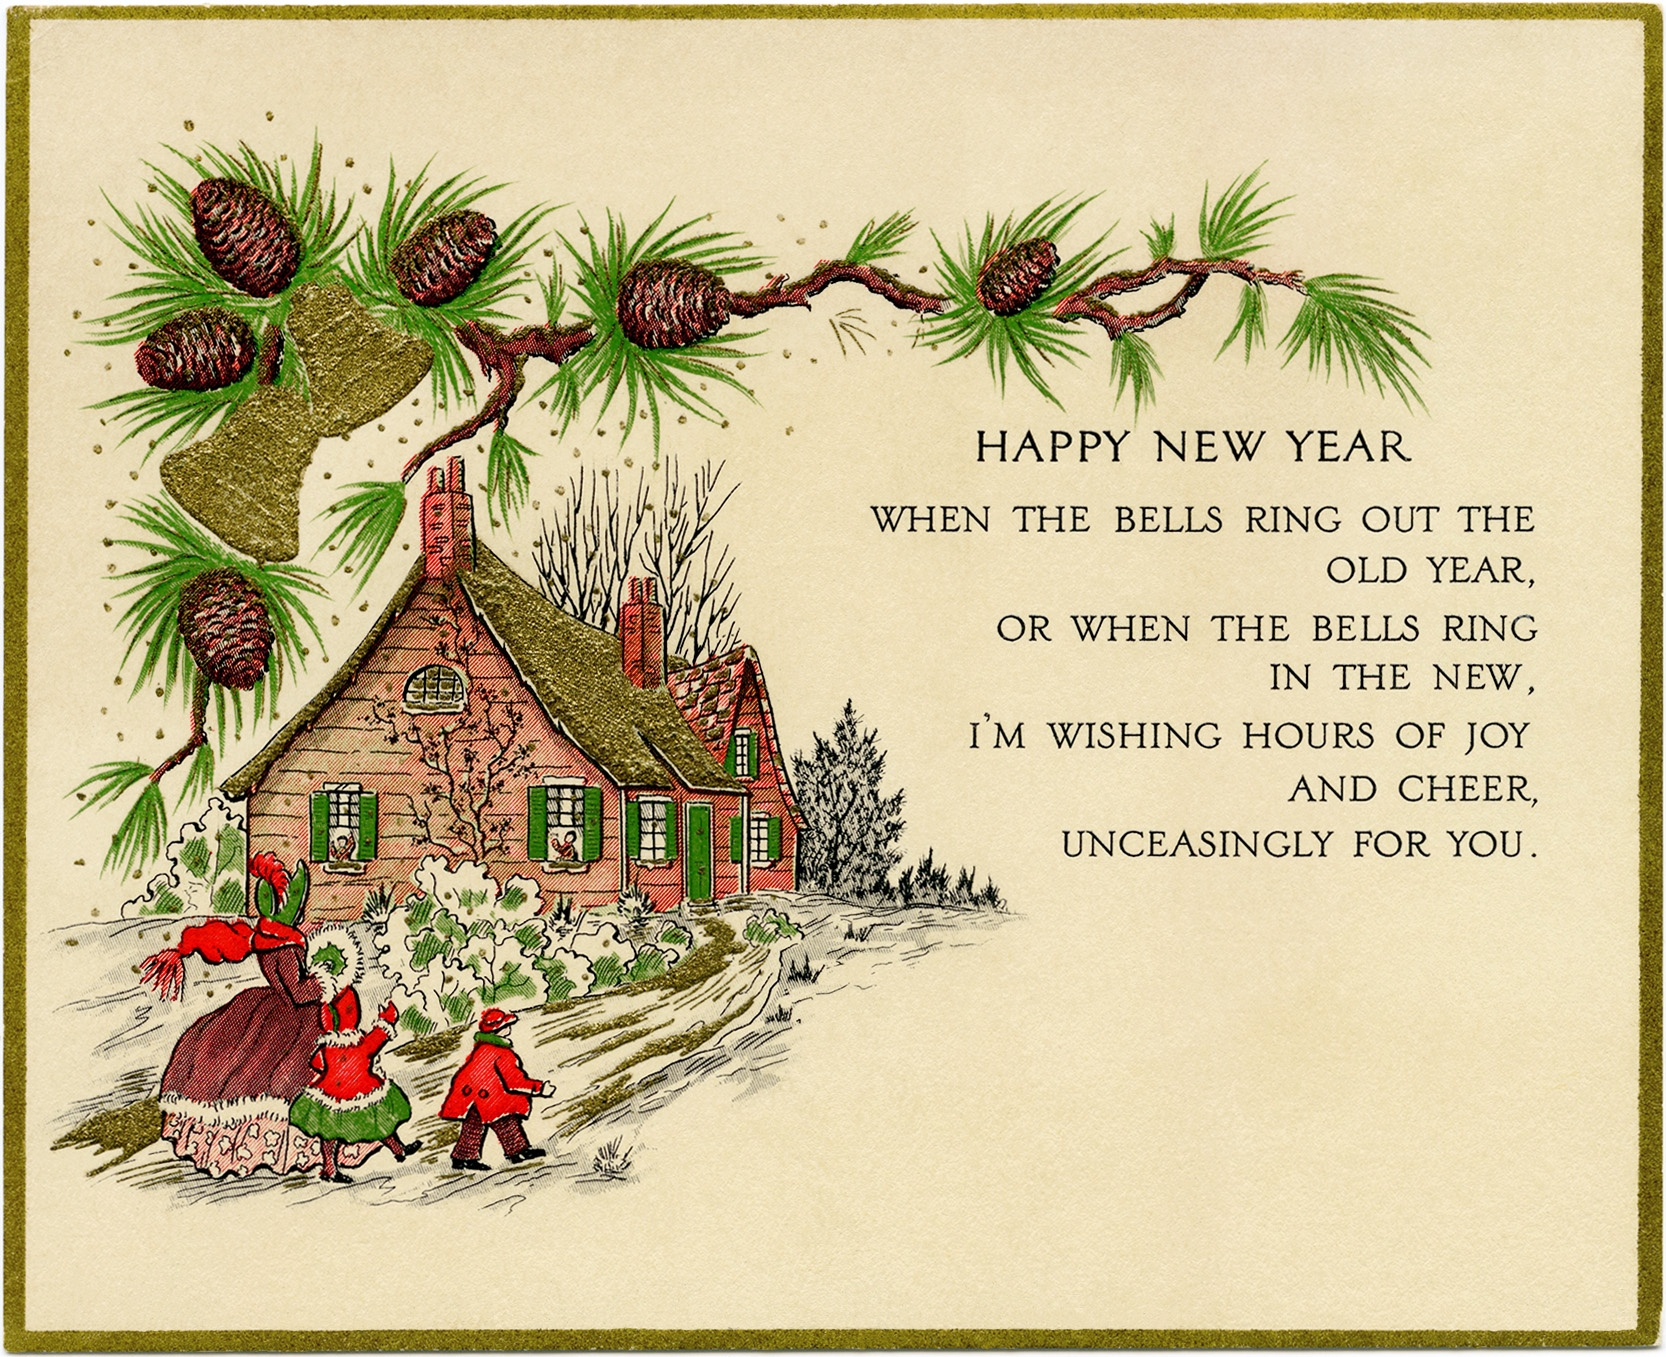 Vintage New Year Greeting Card - Old Design Shop Blog - Free Printable Happy New Year Cards